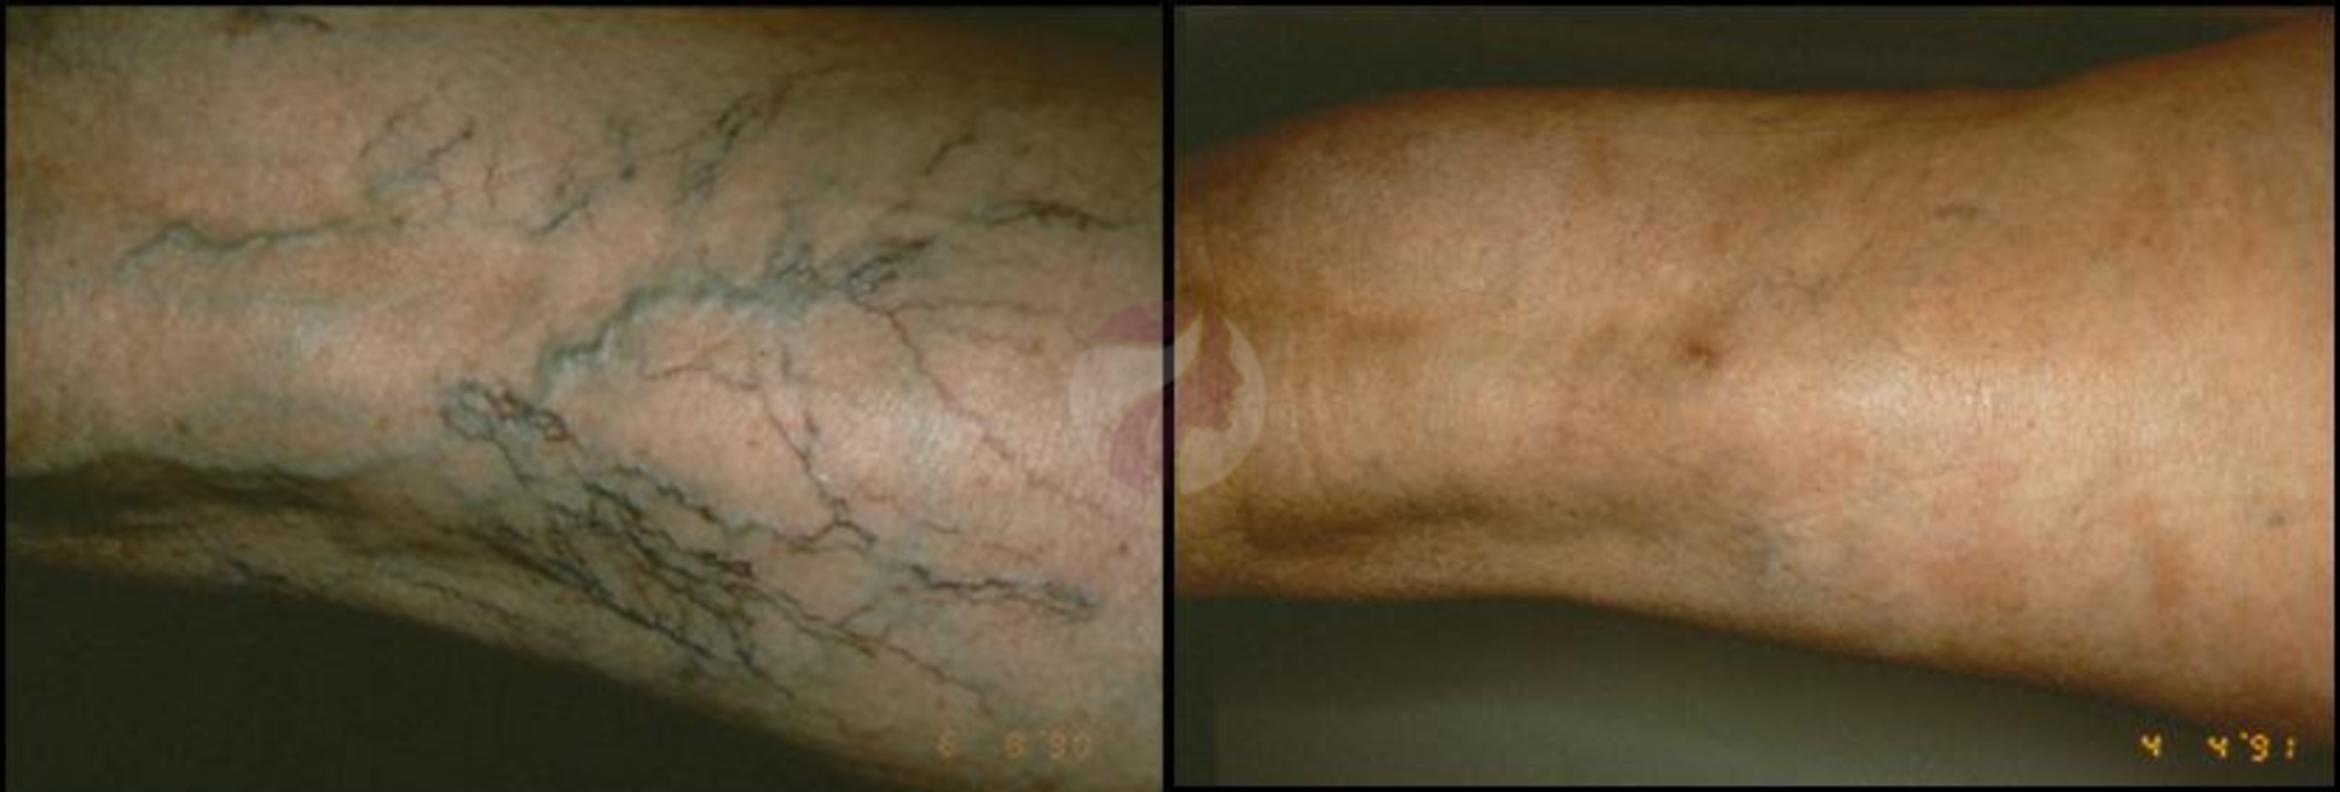 Sclerotherapy for Veins Case 35 Before & After View #1 | Dallas, TX | Dallas Center for Dermatology and Aesthetics